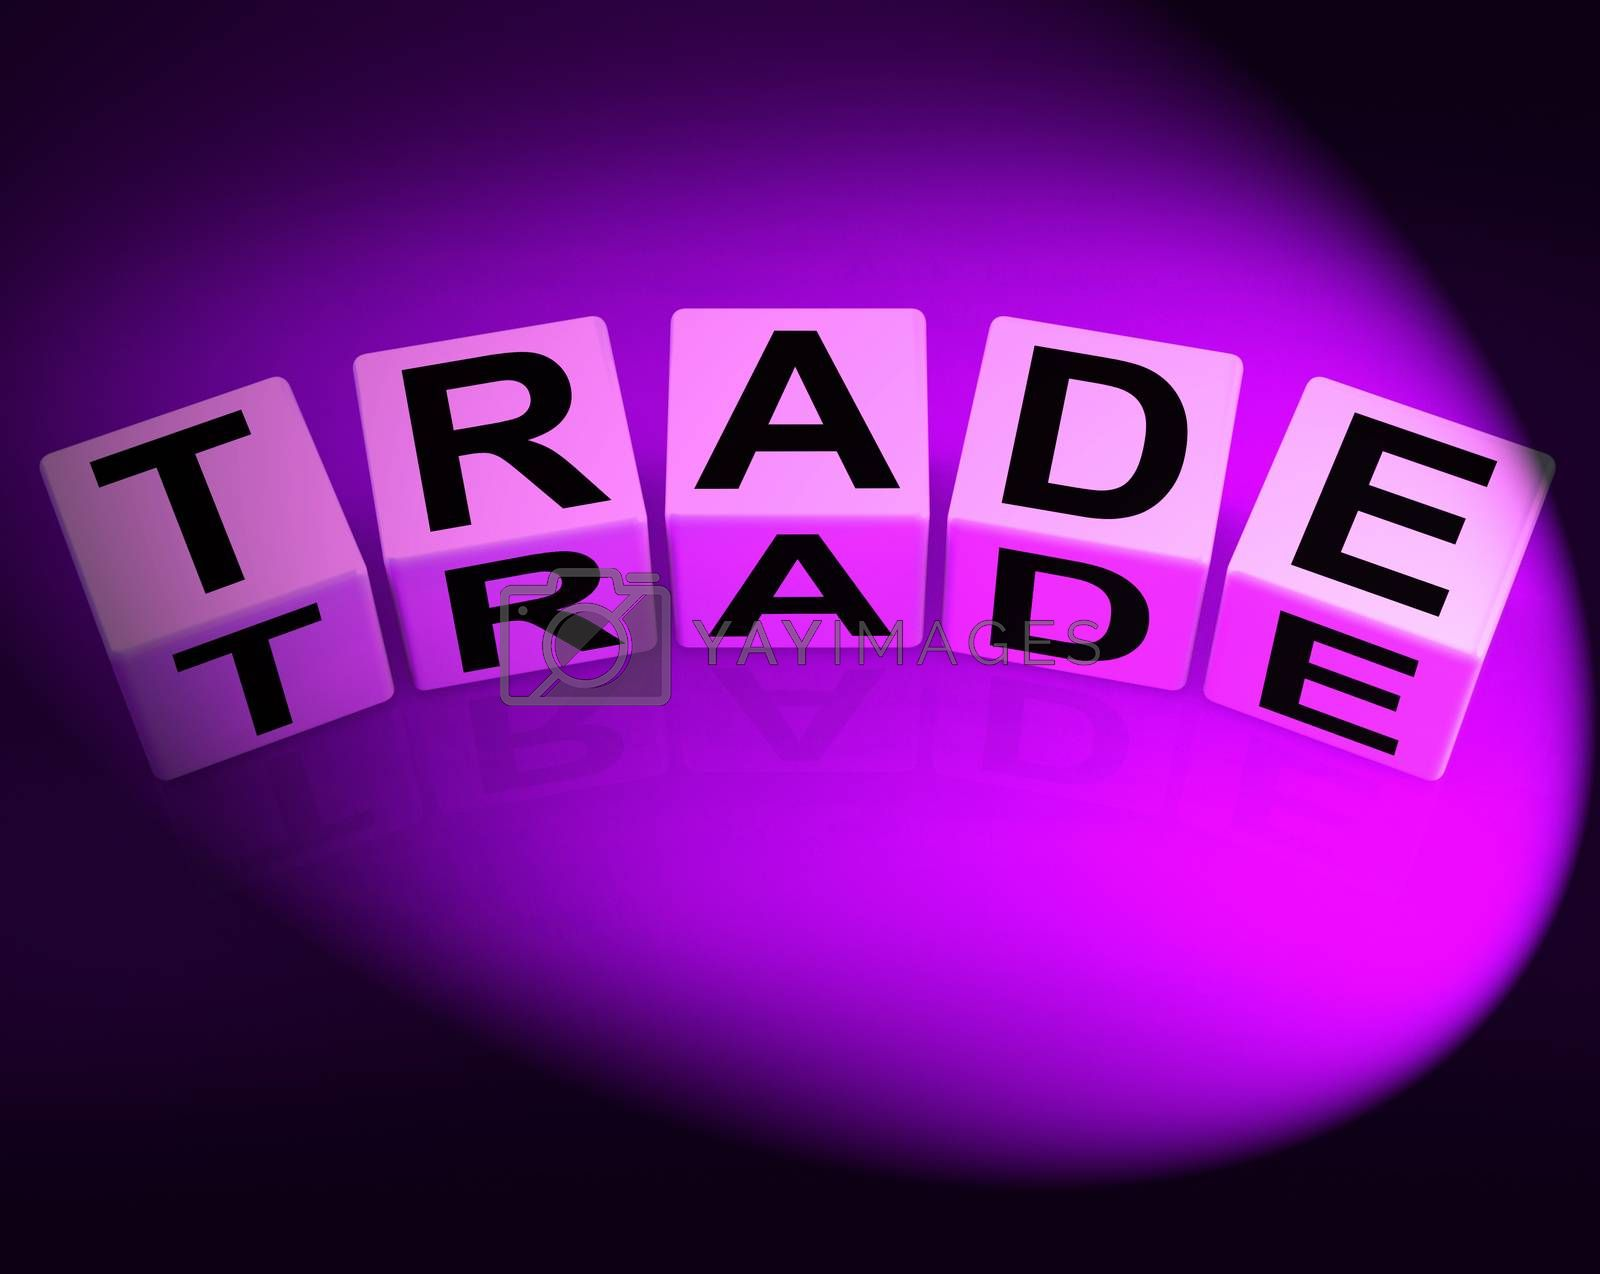 Trade Dice Show Trading Forex Commerce and Industry by stuartmiles